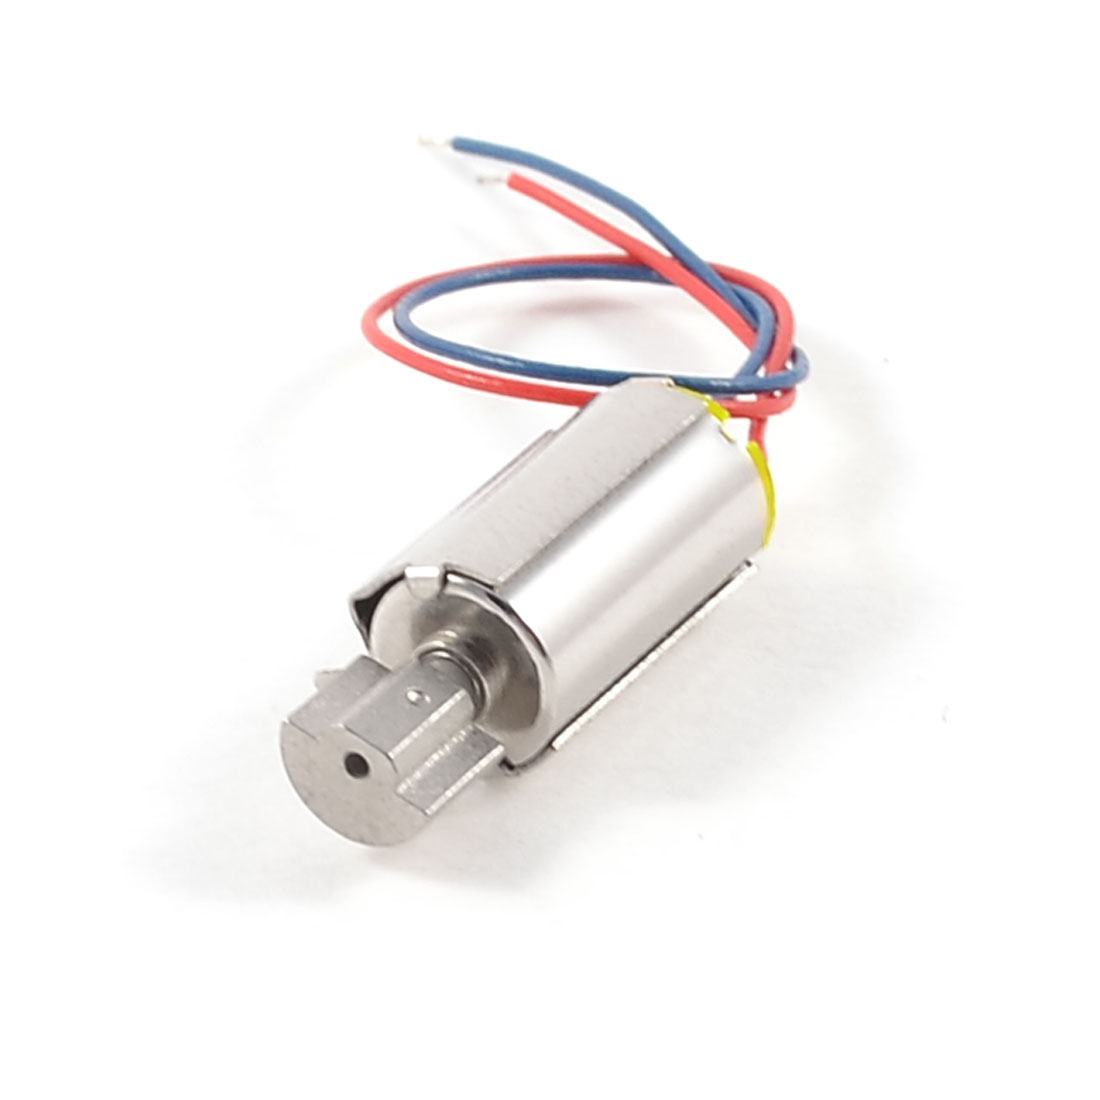 DC 1.5V 60mA 9000+/-2000RPM Electric Vibration Coreless Motor for RC Toy